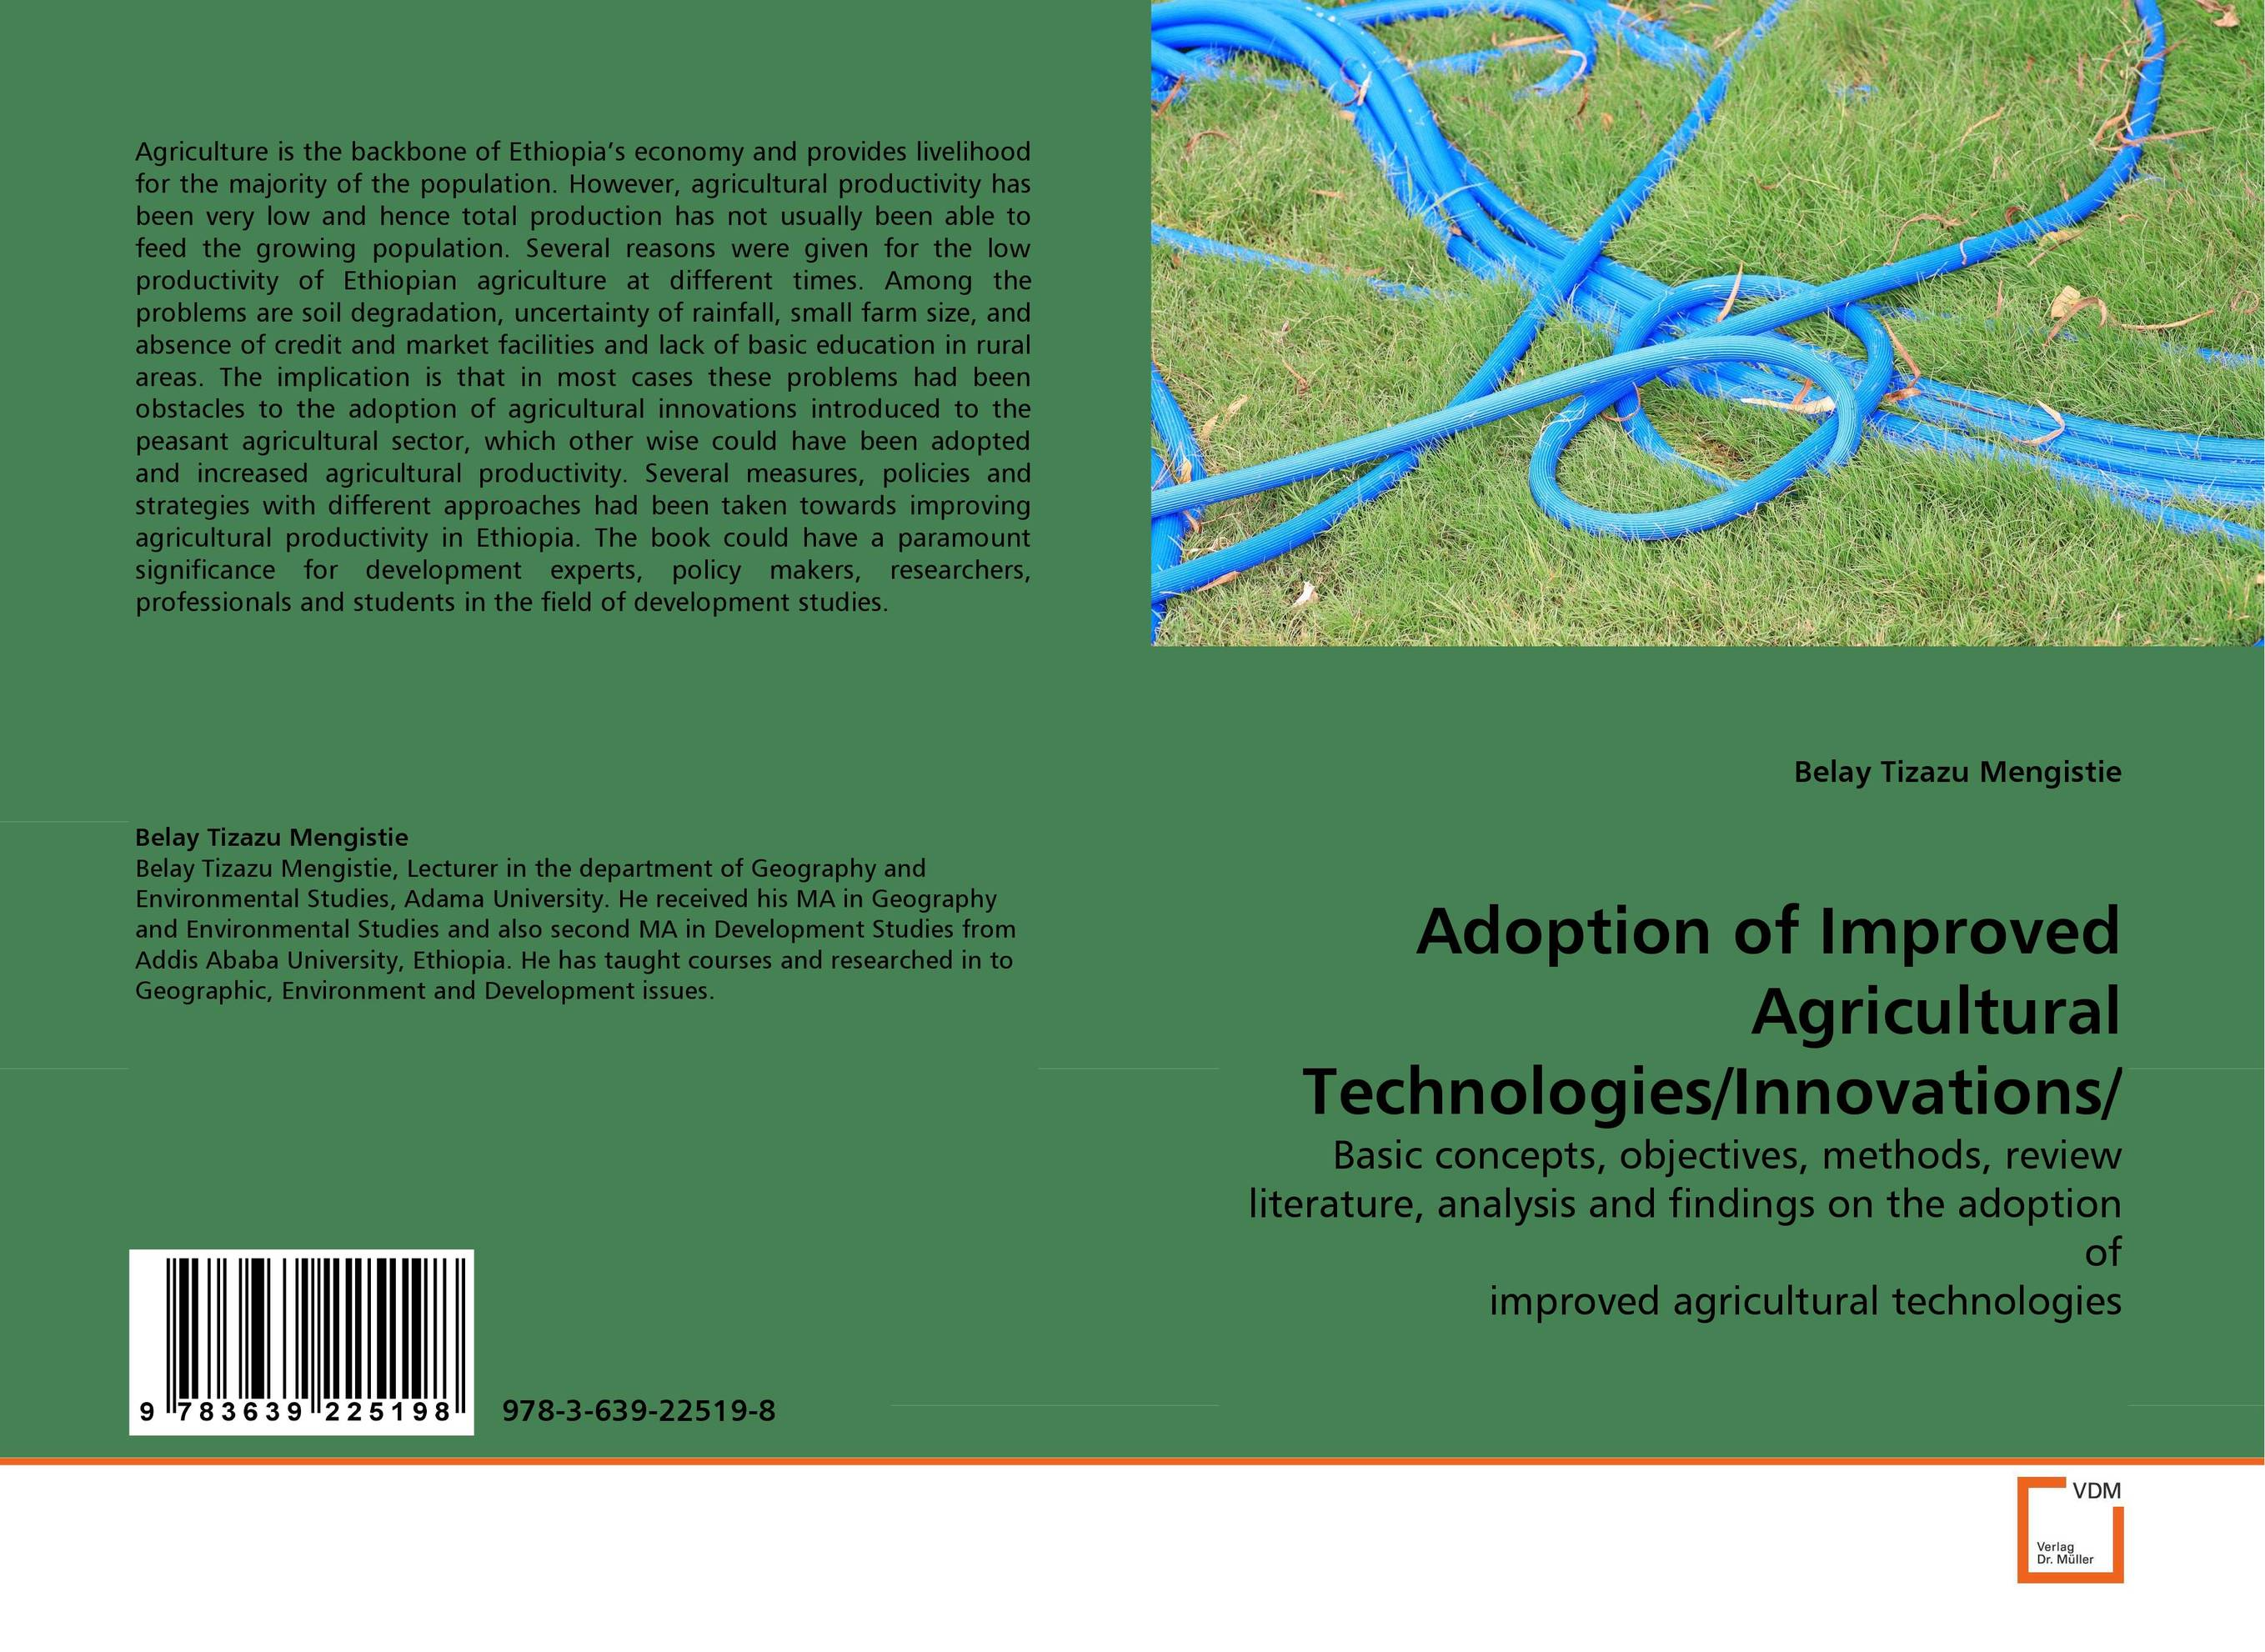 Adoption of Improved Agricultural Technologies/Innovations/ farm level adoption of water system innovations in semi arid areas